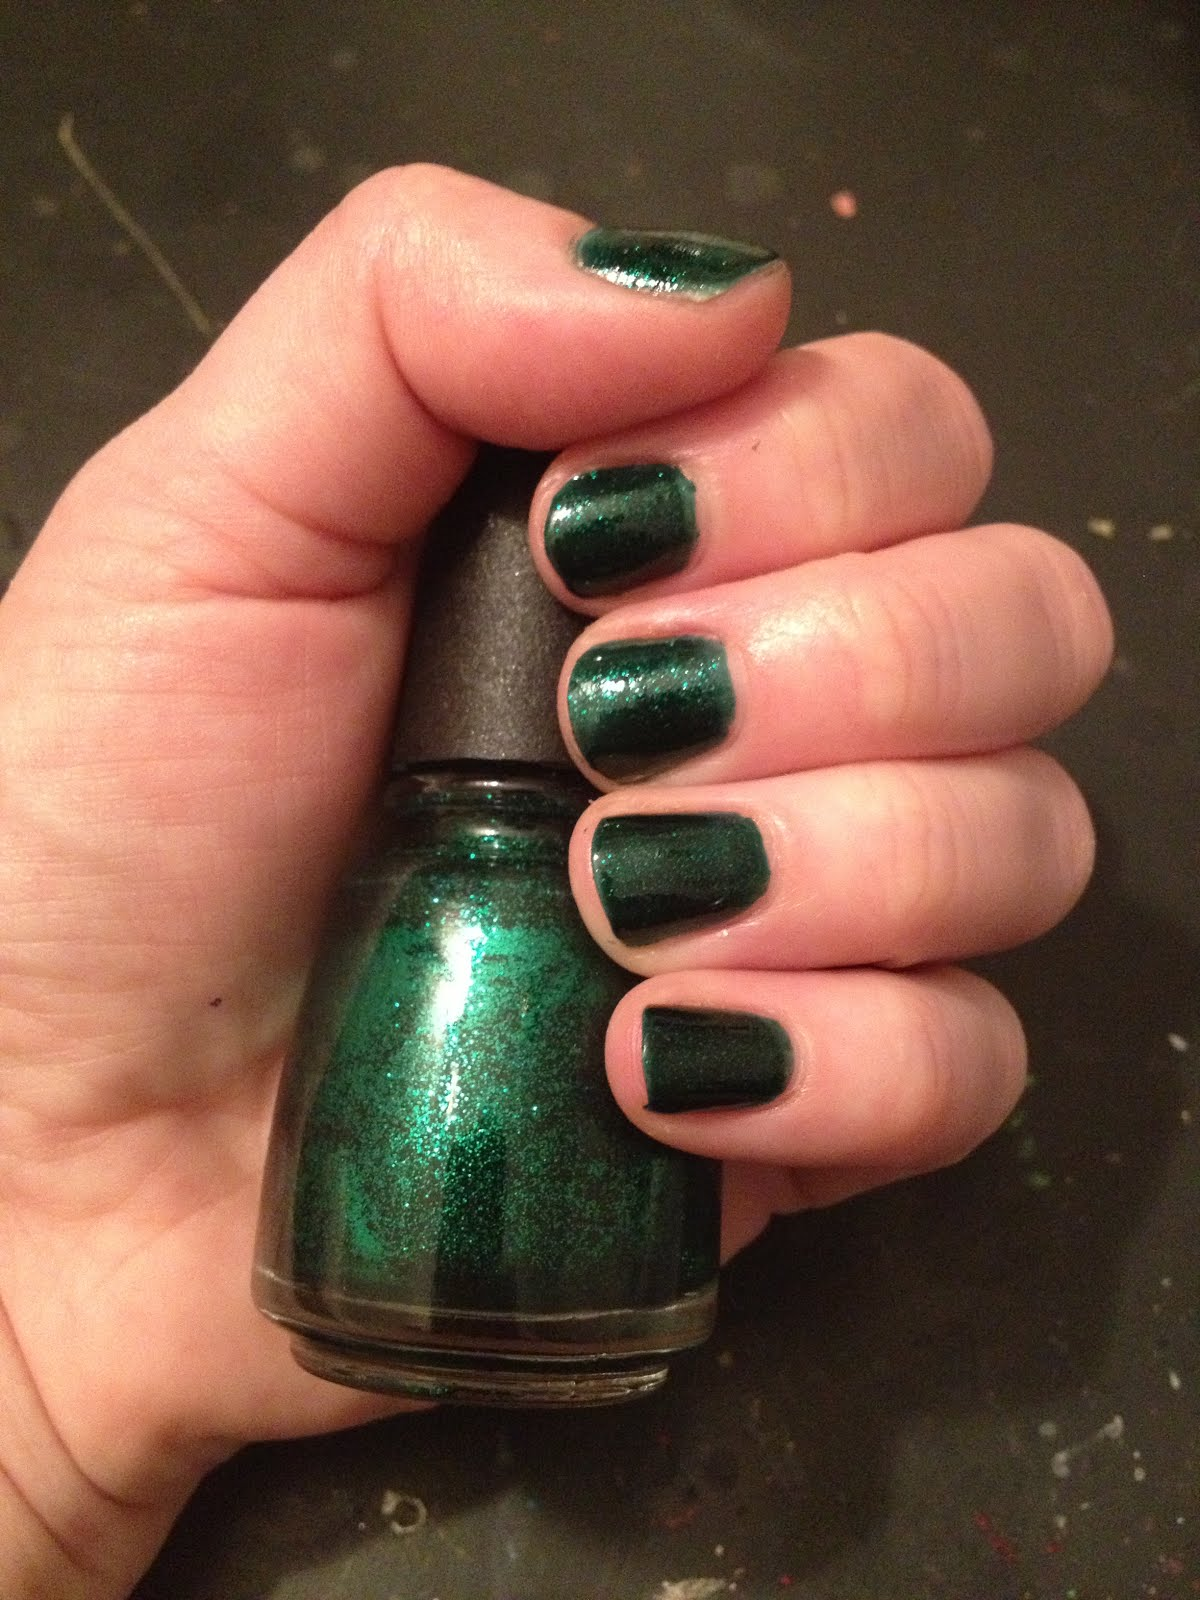 The beauty of life 12 days of favorite nail colors from jamie and china glaze china glaze emerald sparkle china glaze nail polish china glaze wizard nvjuhfo Gallery